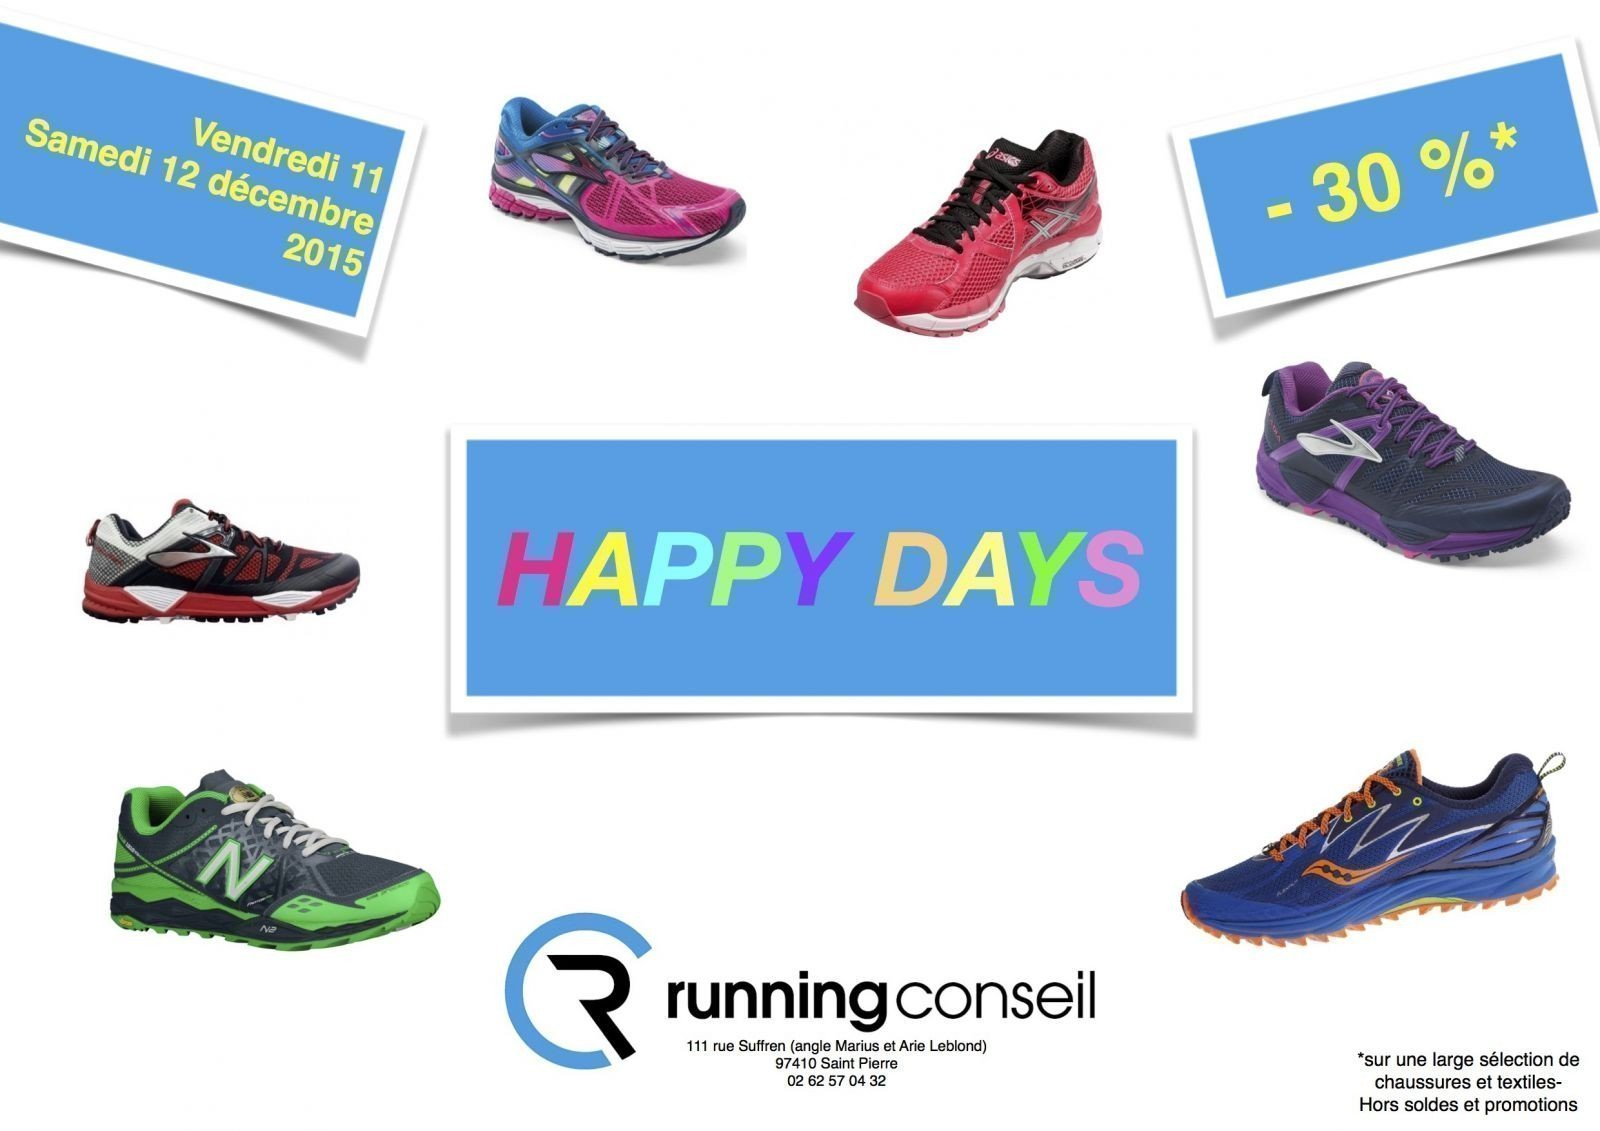 HAPPY DAYS - 30 % Running Conseil la Réunion